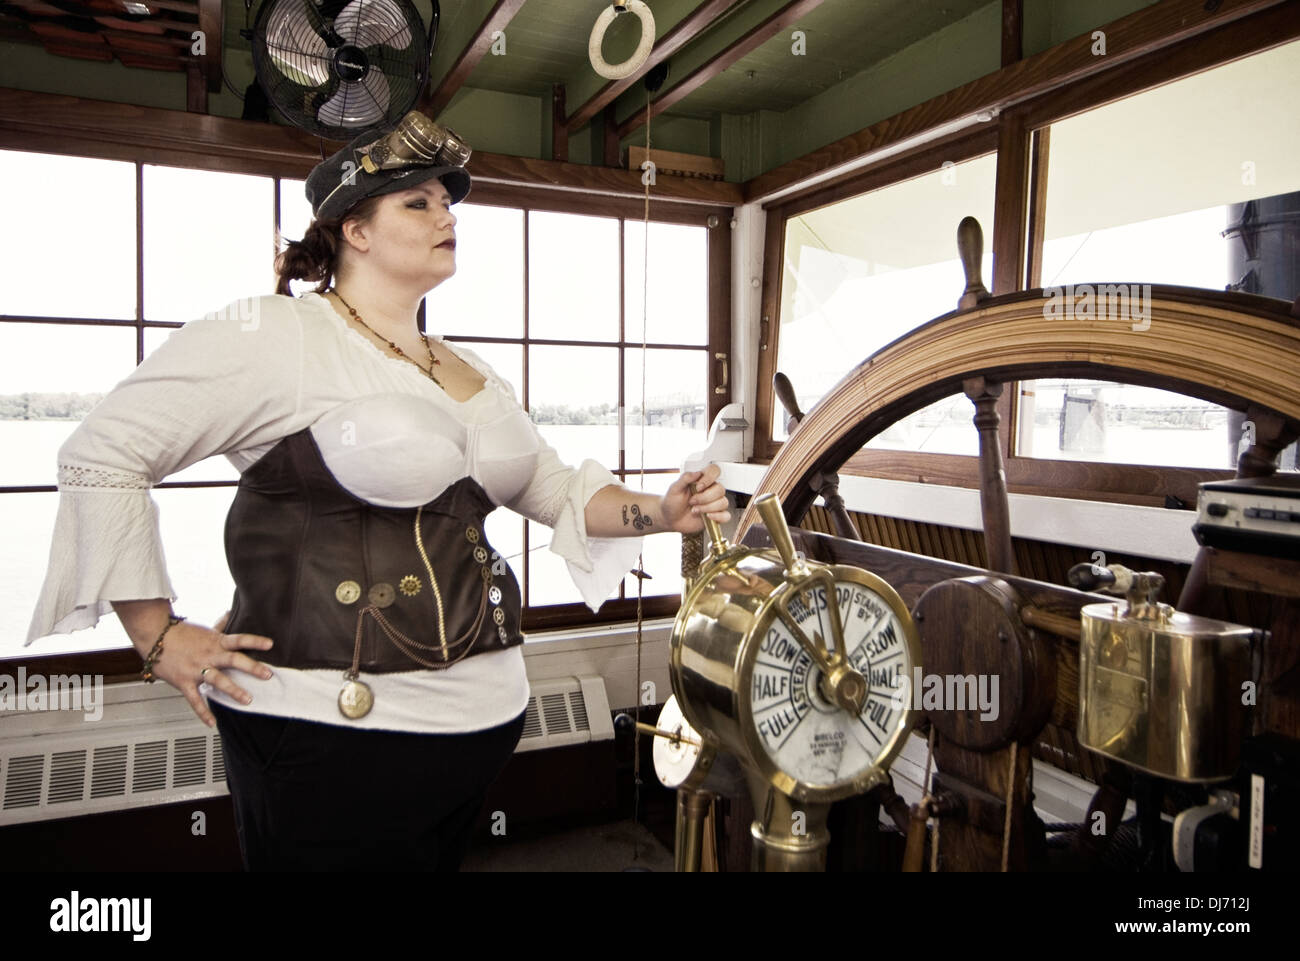 Young Woman Dressed in Steampunk Posing in the Wheelhouse on the Belle of Louisville - Stock Image